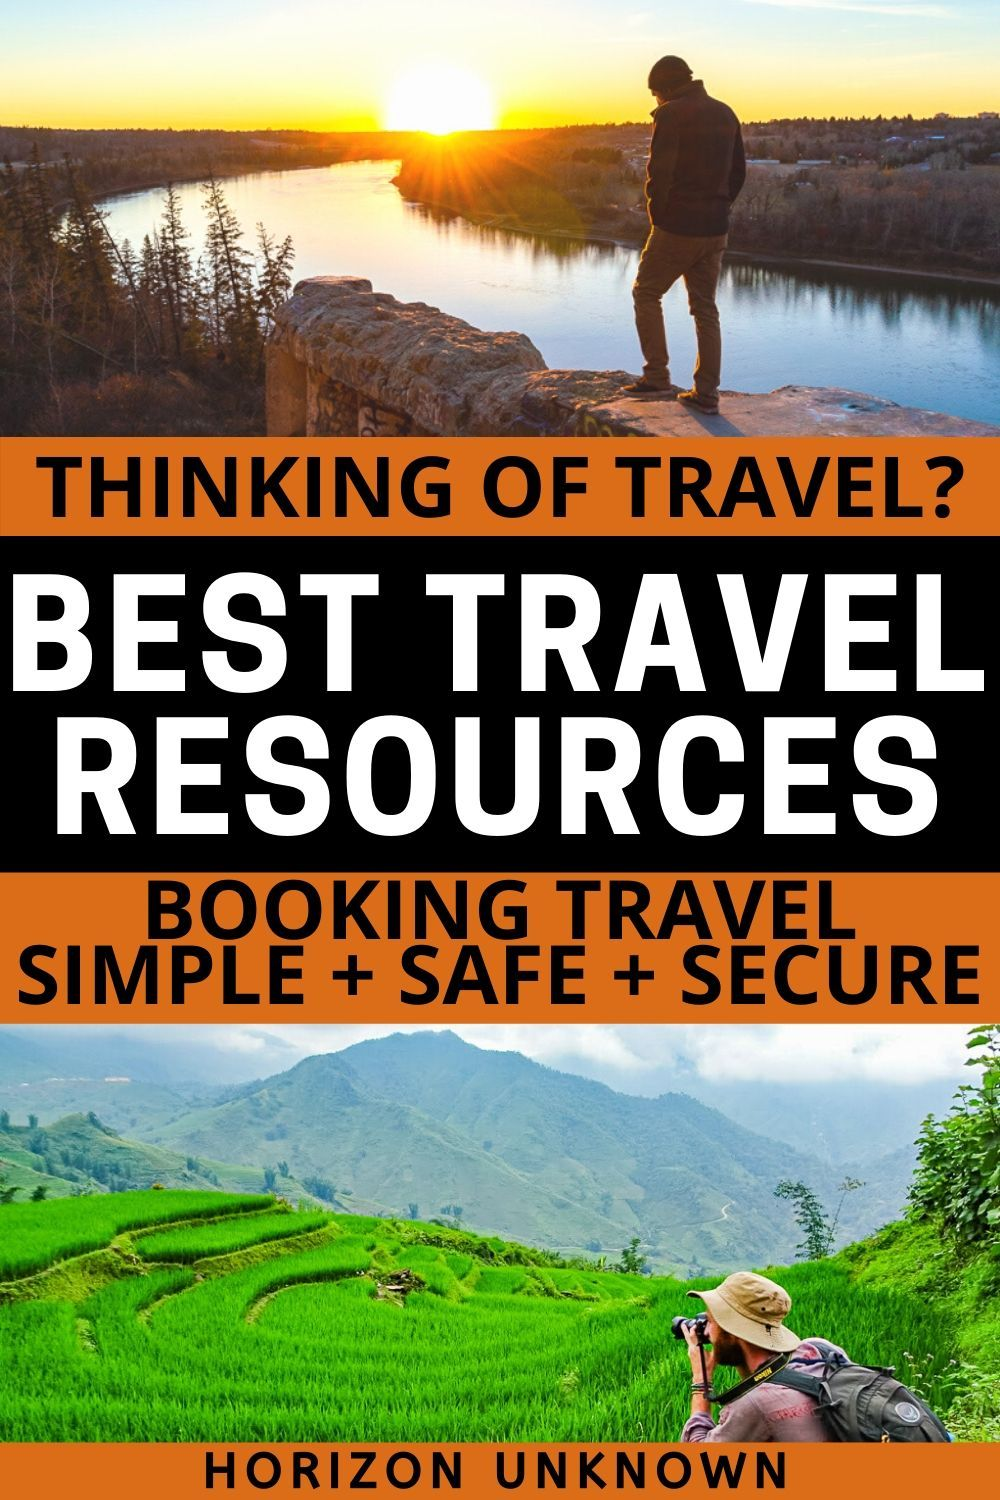 Best Travel Resources In 2020 Travel Insurance Companies Travel